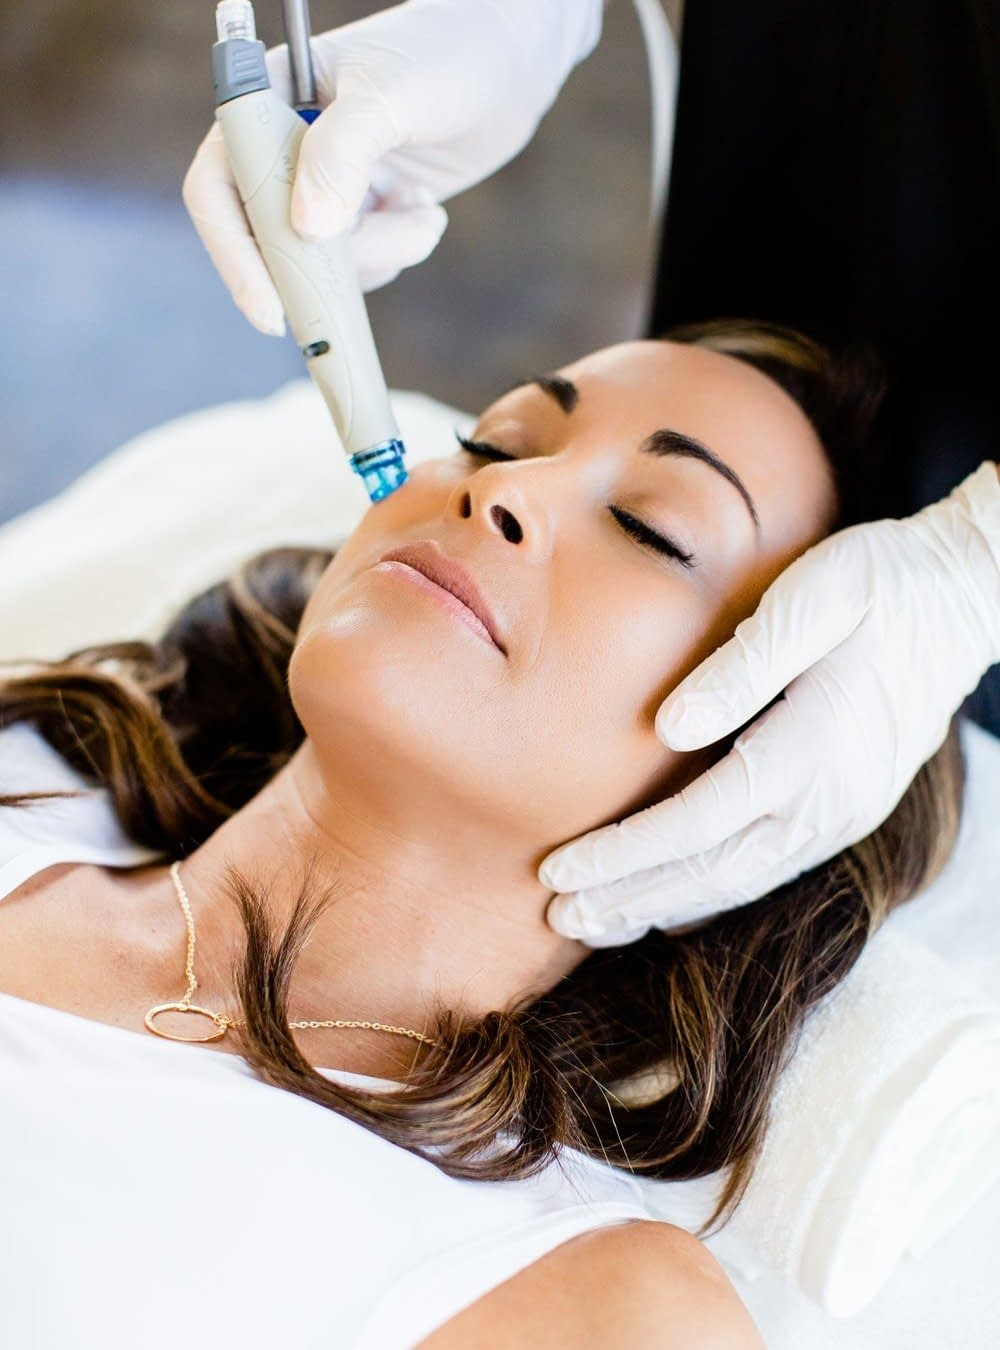 Get The Best Skin Care Treatment with HydraFacial